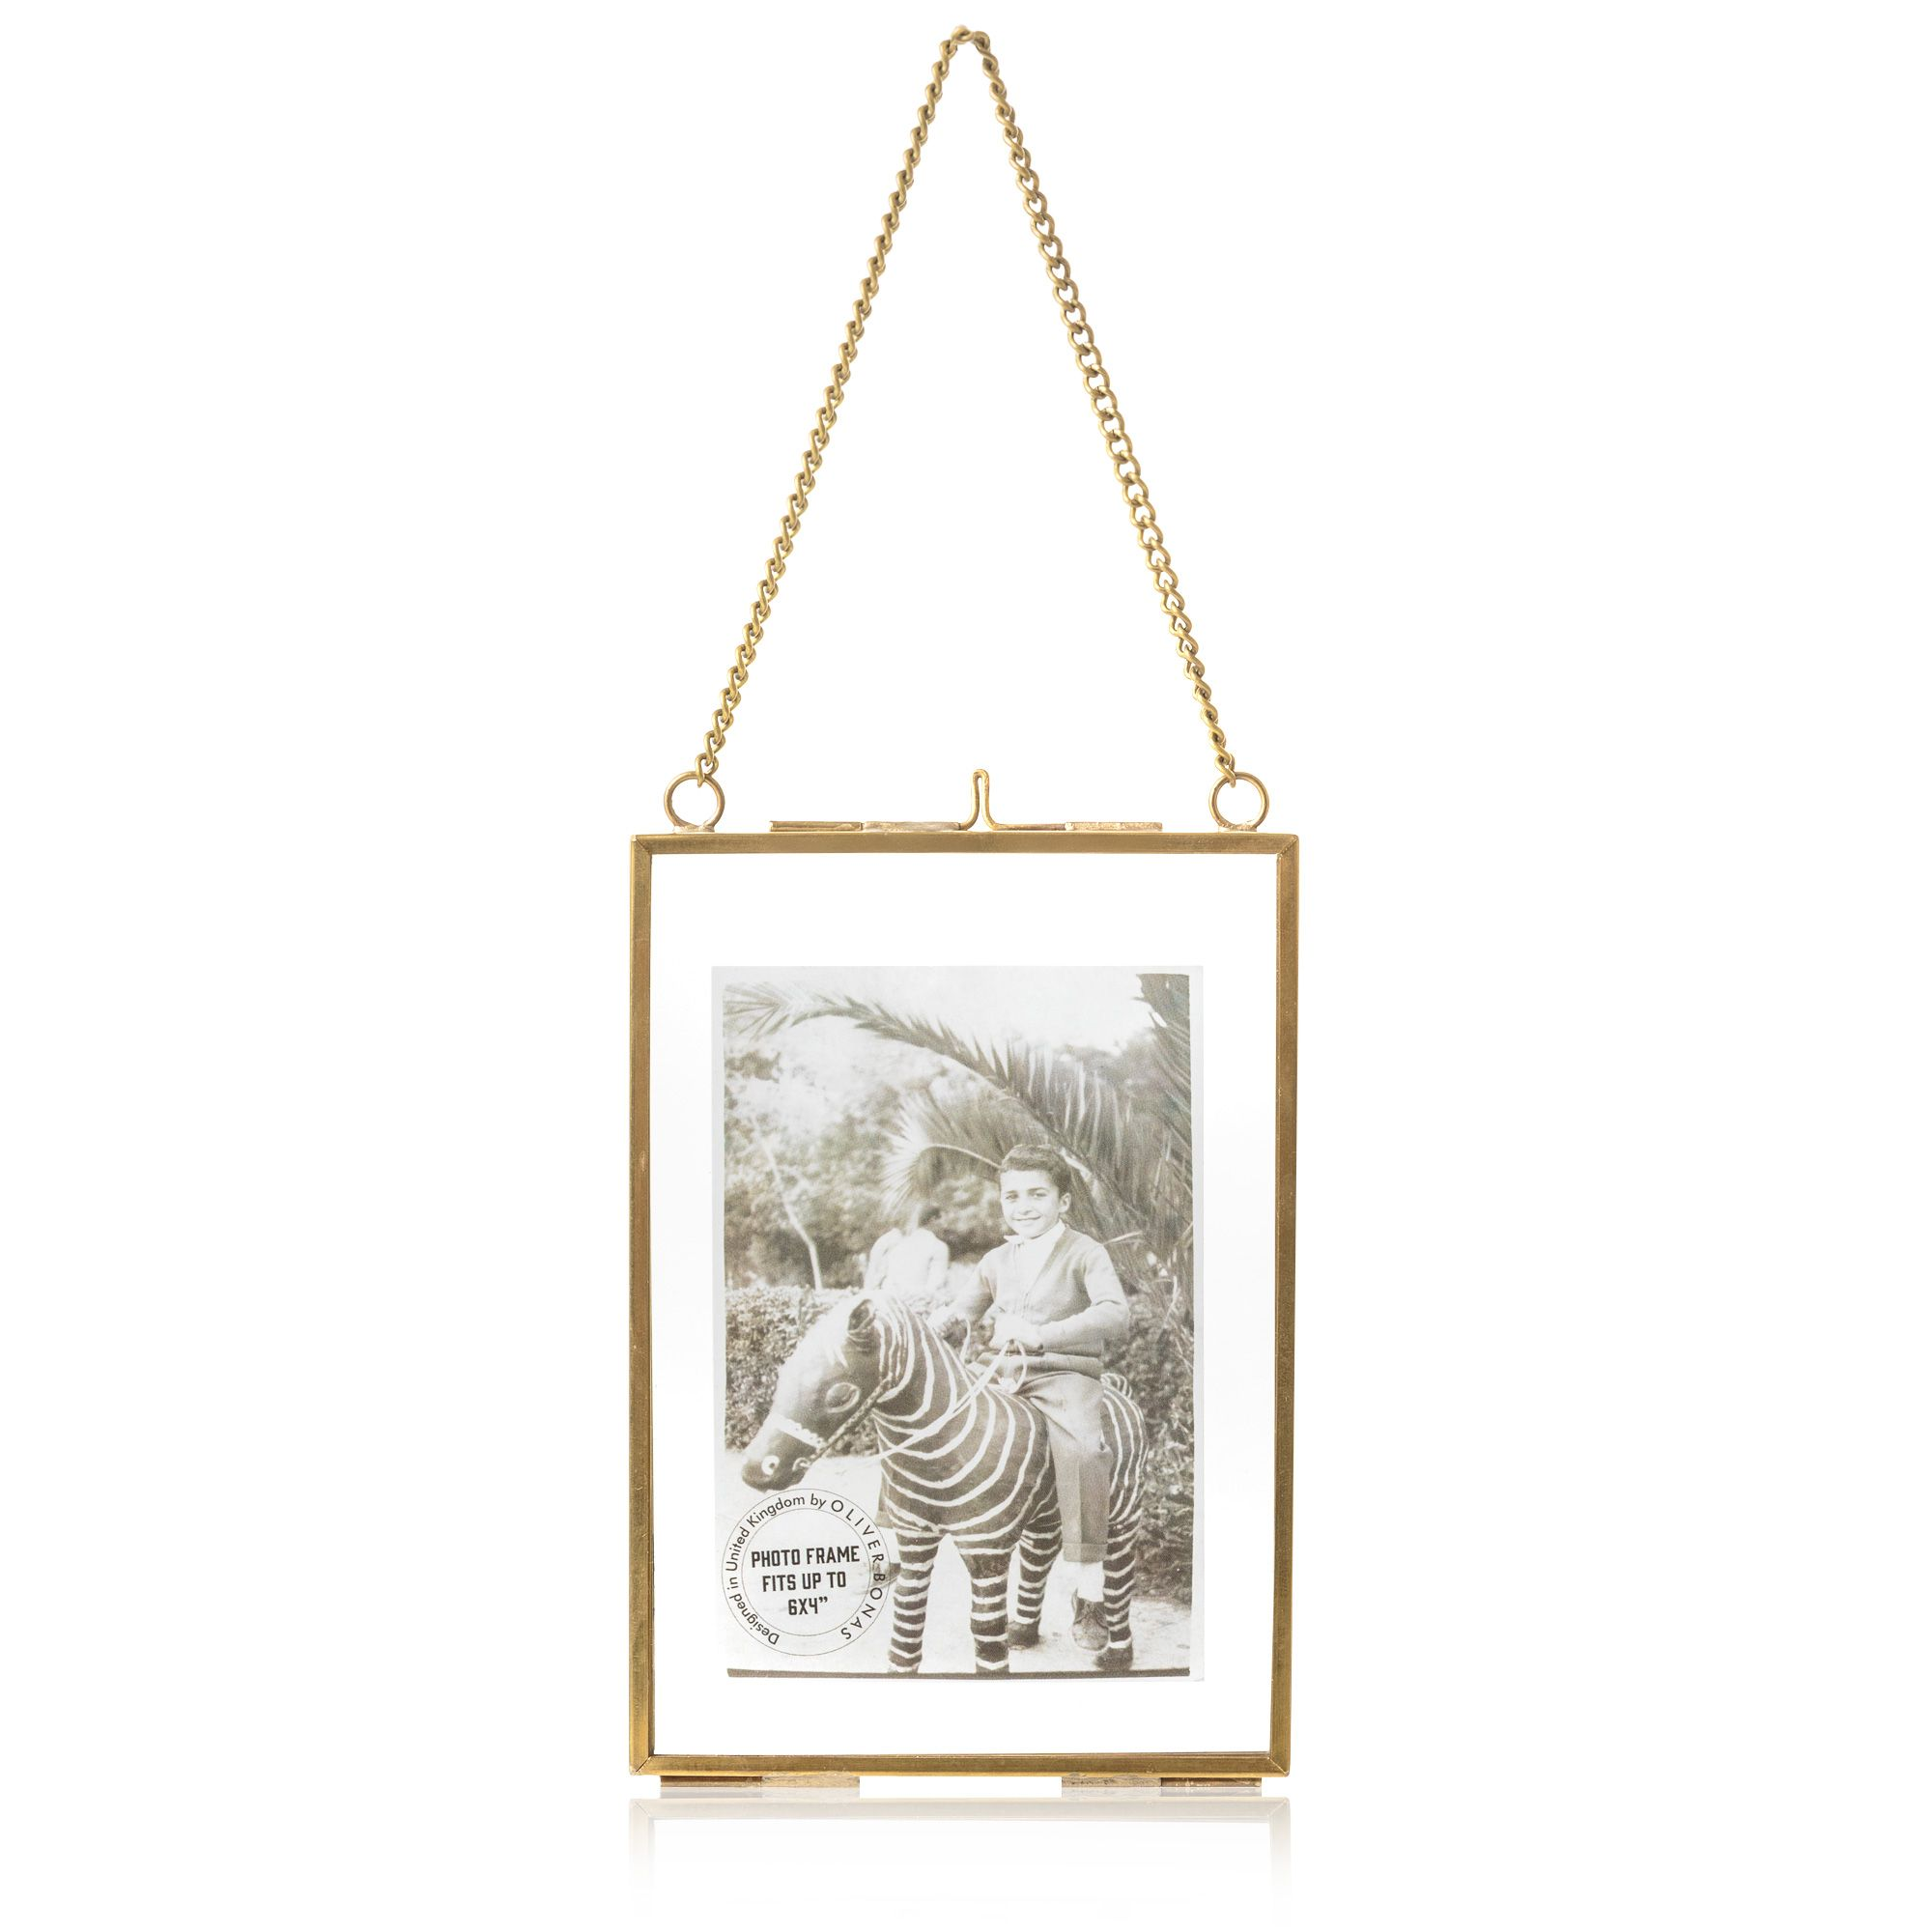 Gold & Glass Hanging Wall Frame 6x4\